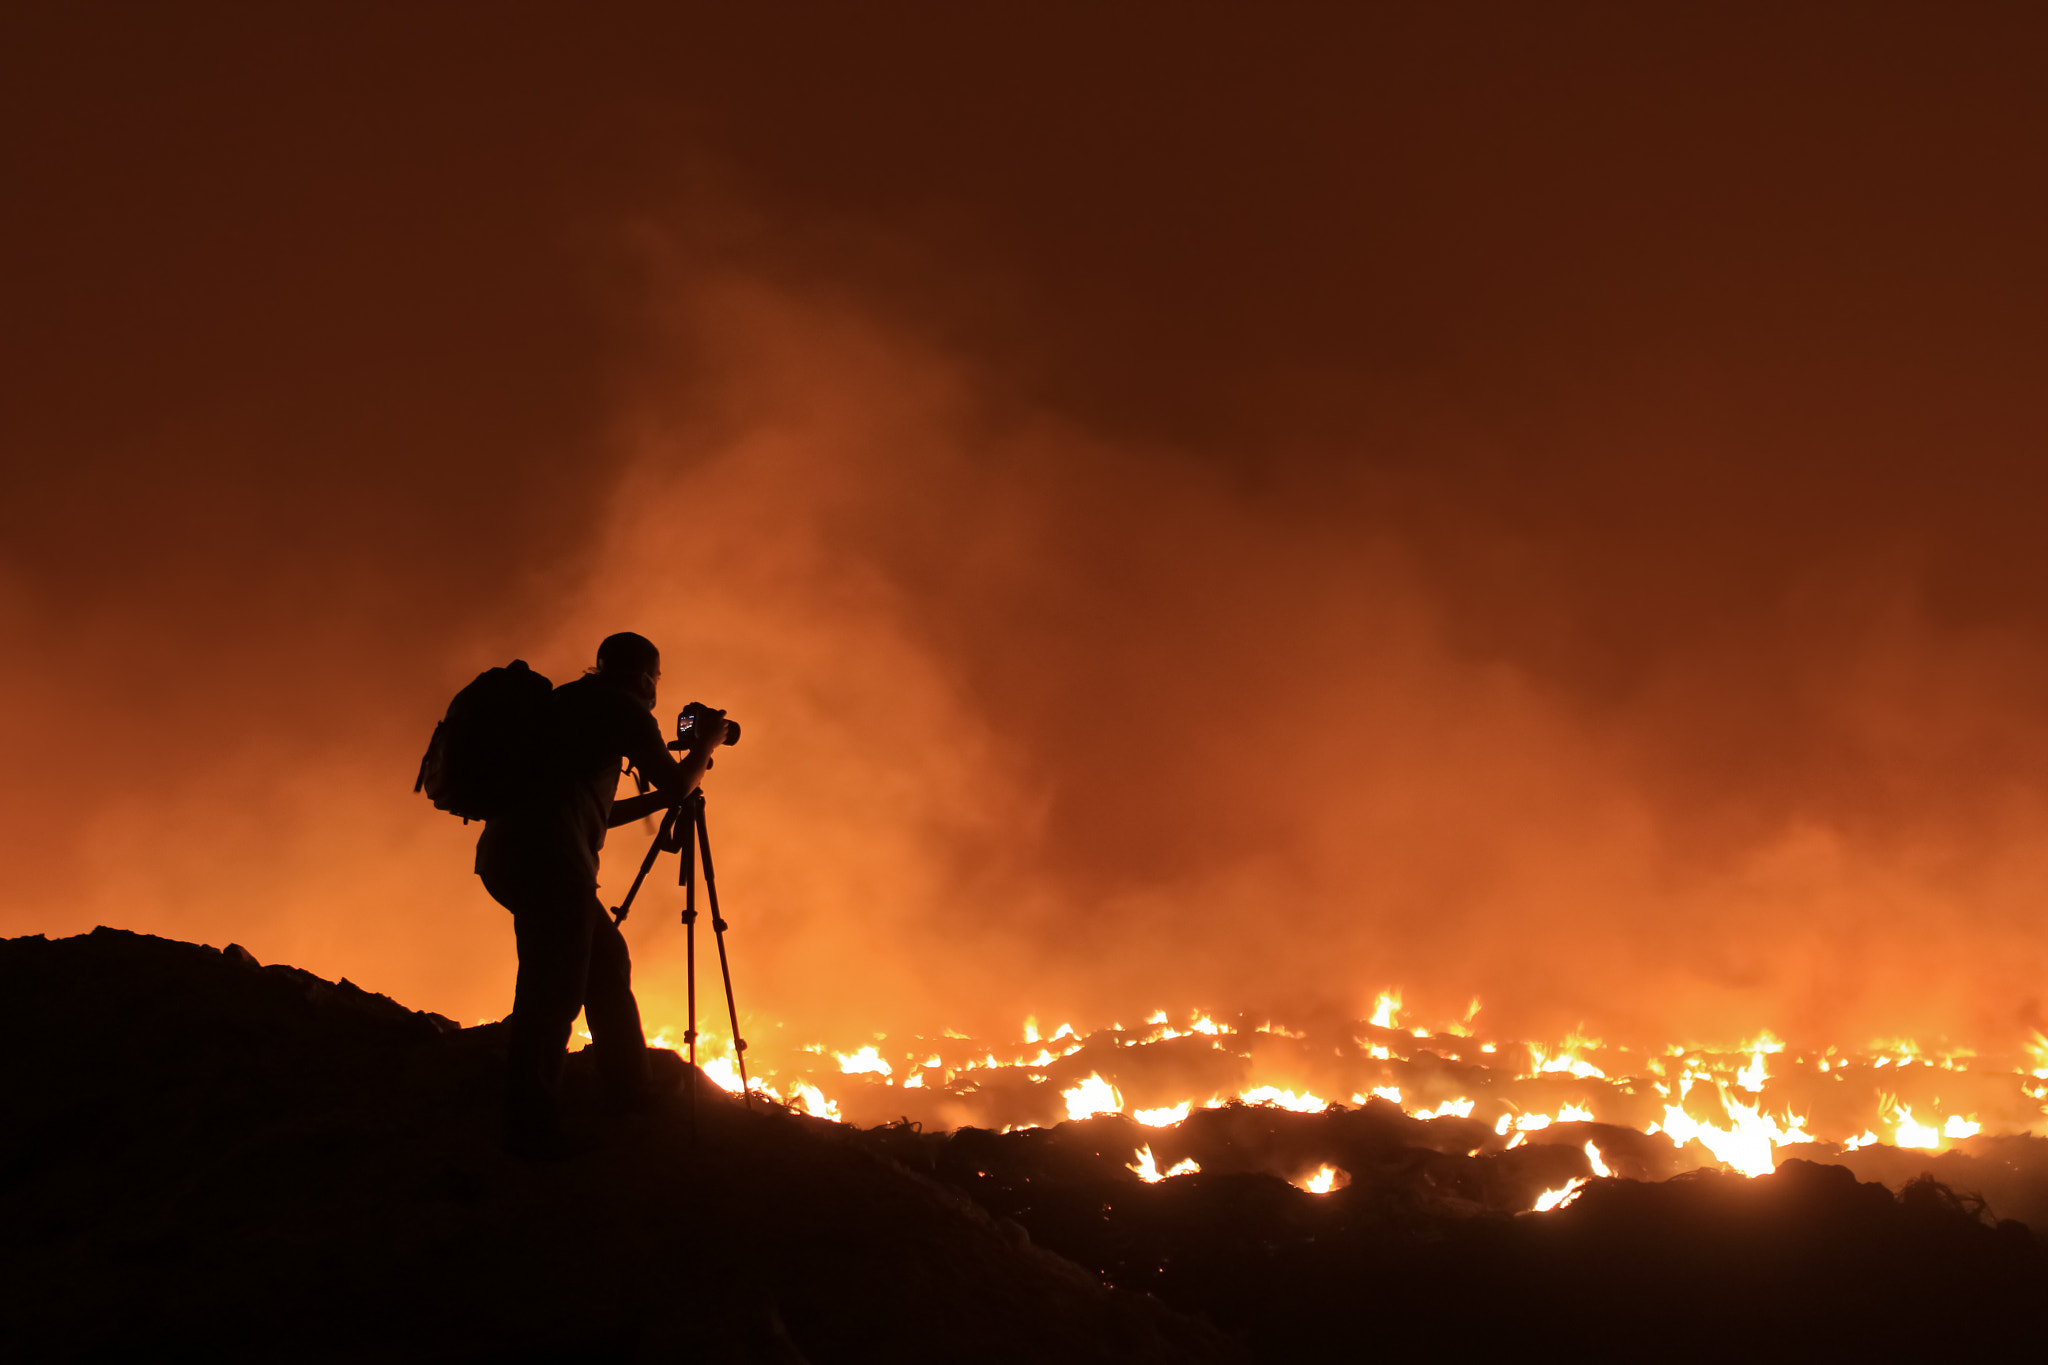 Photograph Photographer on Fire by Husain Al-Hashemi on 500px